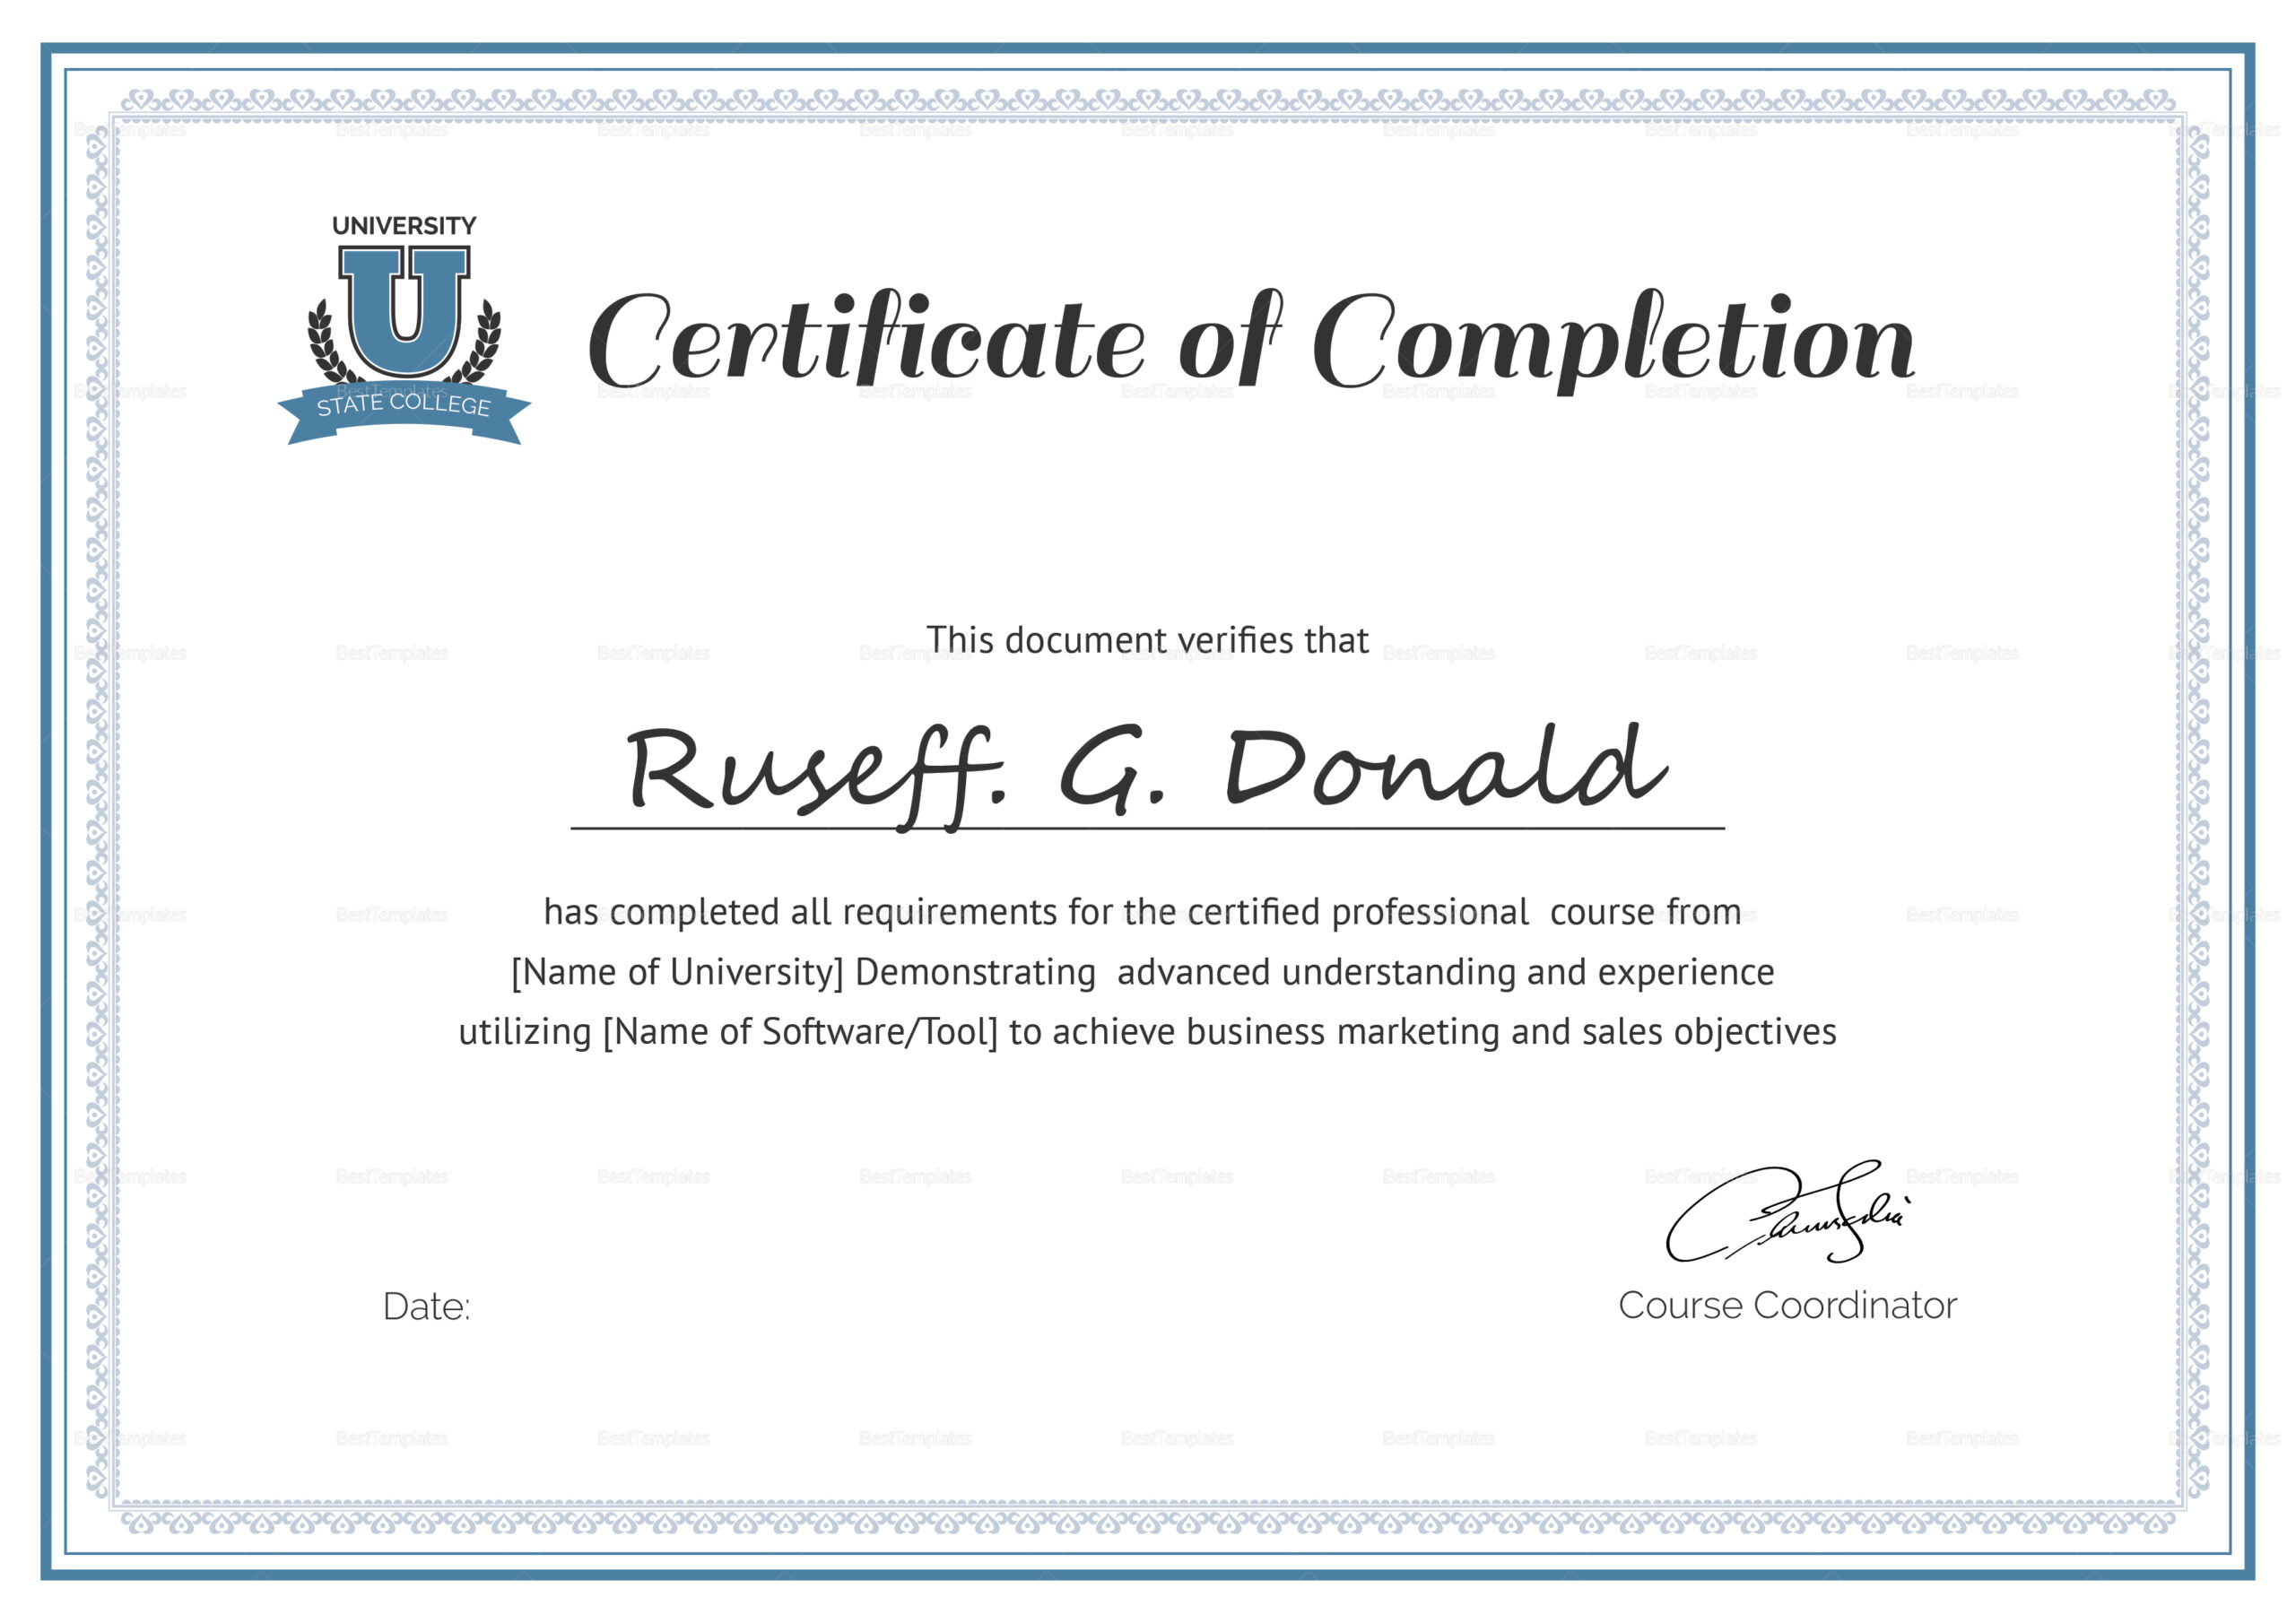 Course Completion Certificate Format Word  Calep in Training Course Certificate Templates